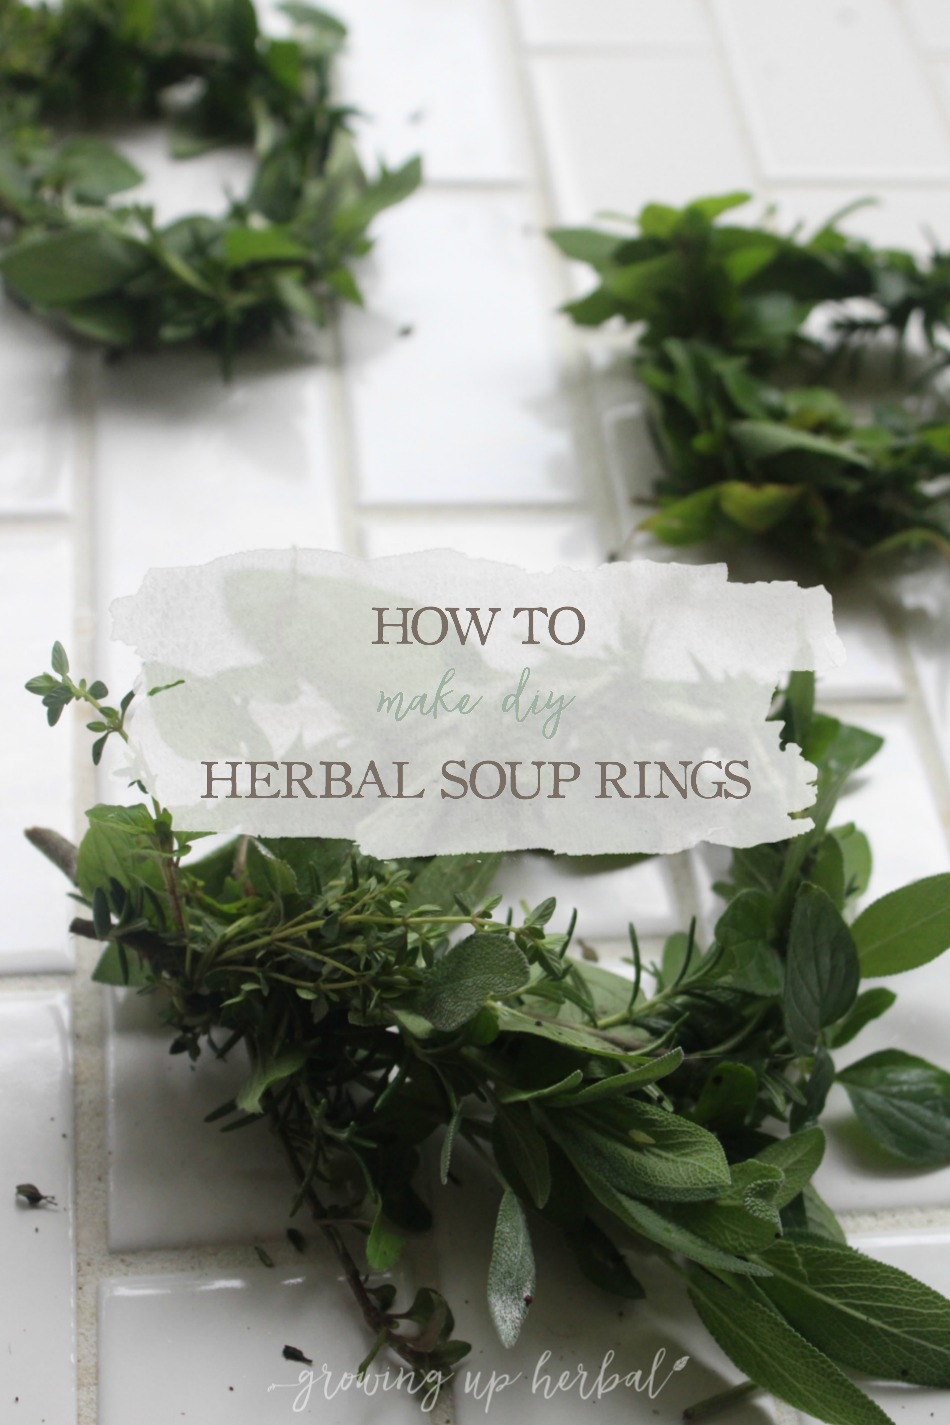 How To Make DIY Herbal Soup Rings | Growing Up Herbal | Take your water-based foods to the next level by using these herbal soup rings to amp up the flavor and nutritional benefits! Learn to make them in this post.